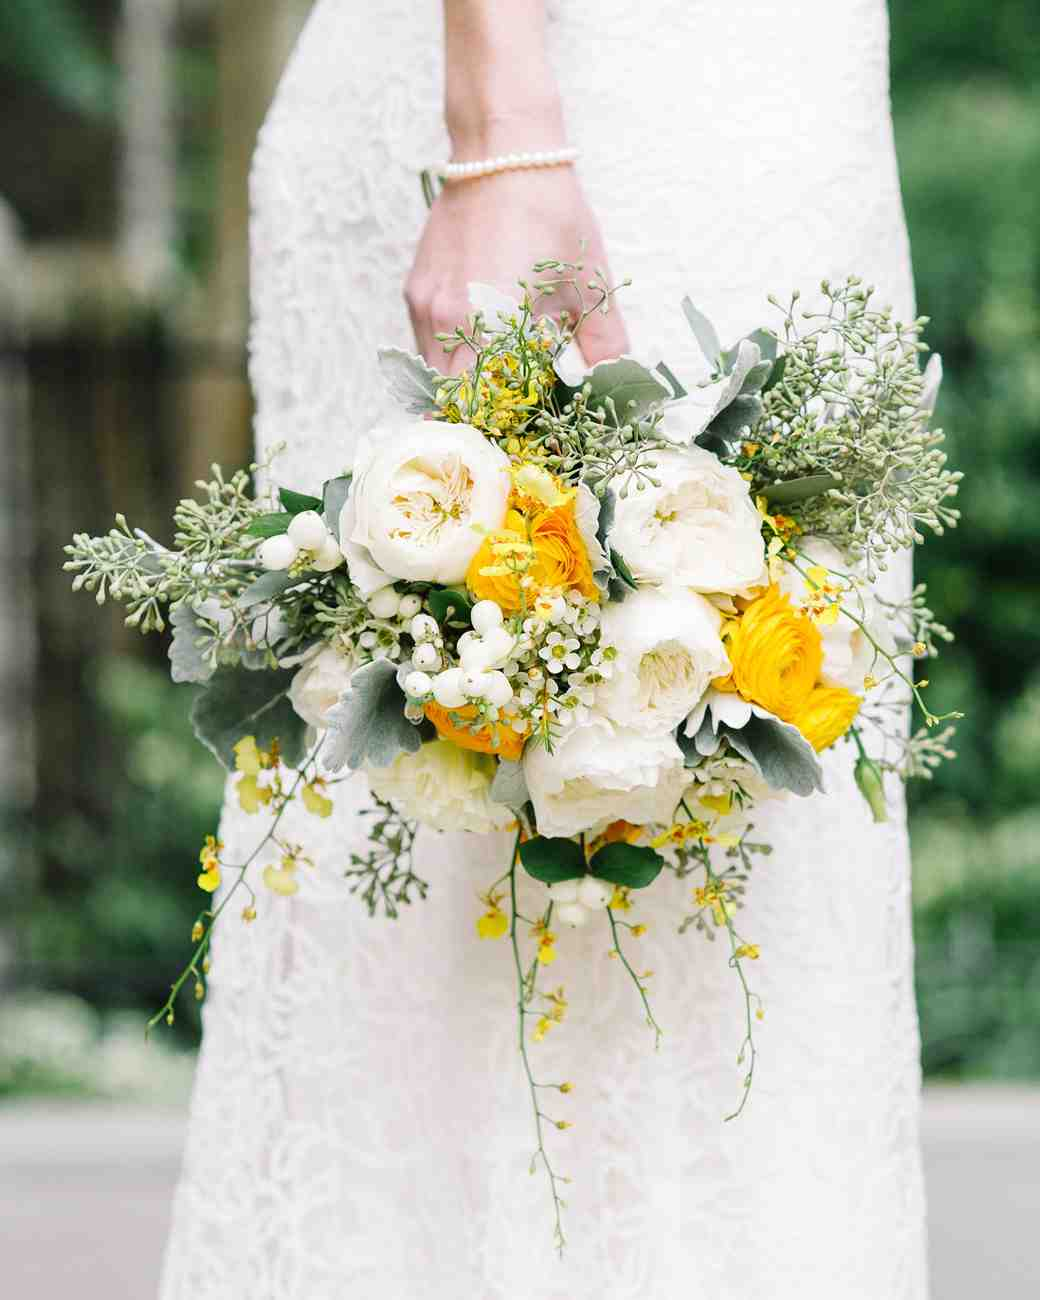 Wedding Flowers Yellow Roses: 31 Colorful Wedding Bouquets